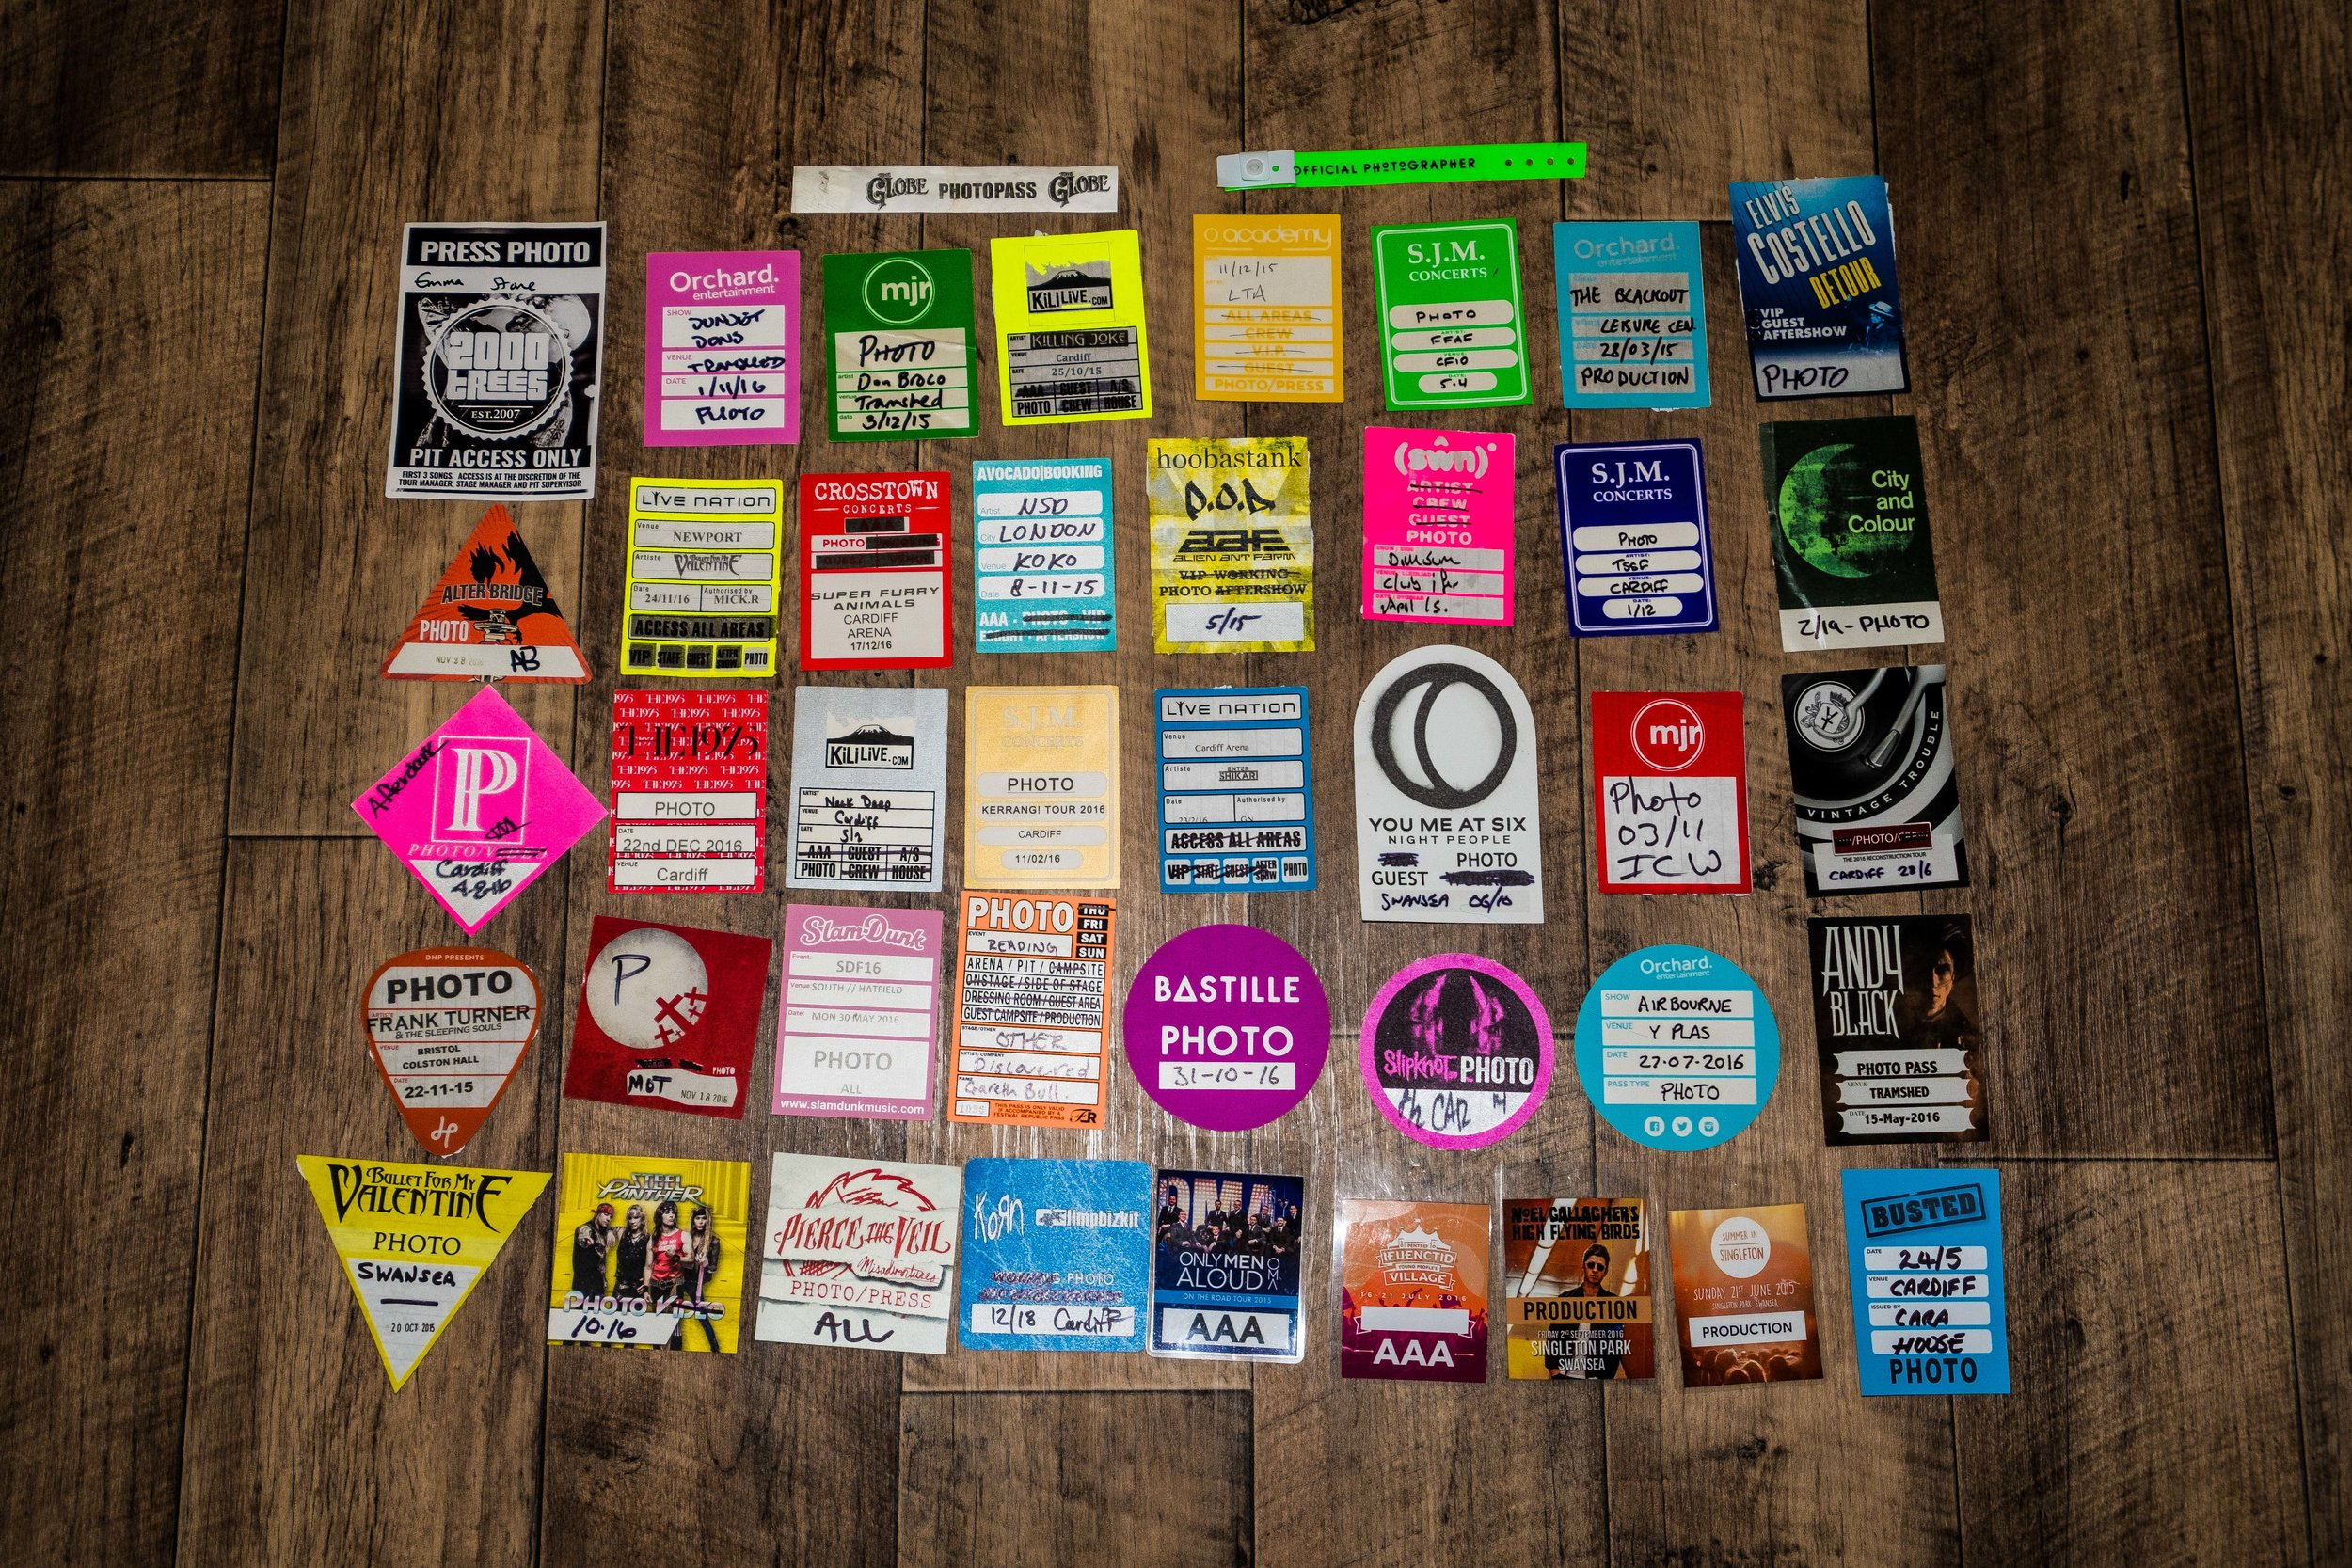 My photo pass collection